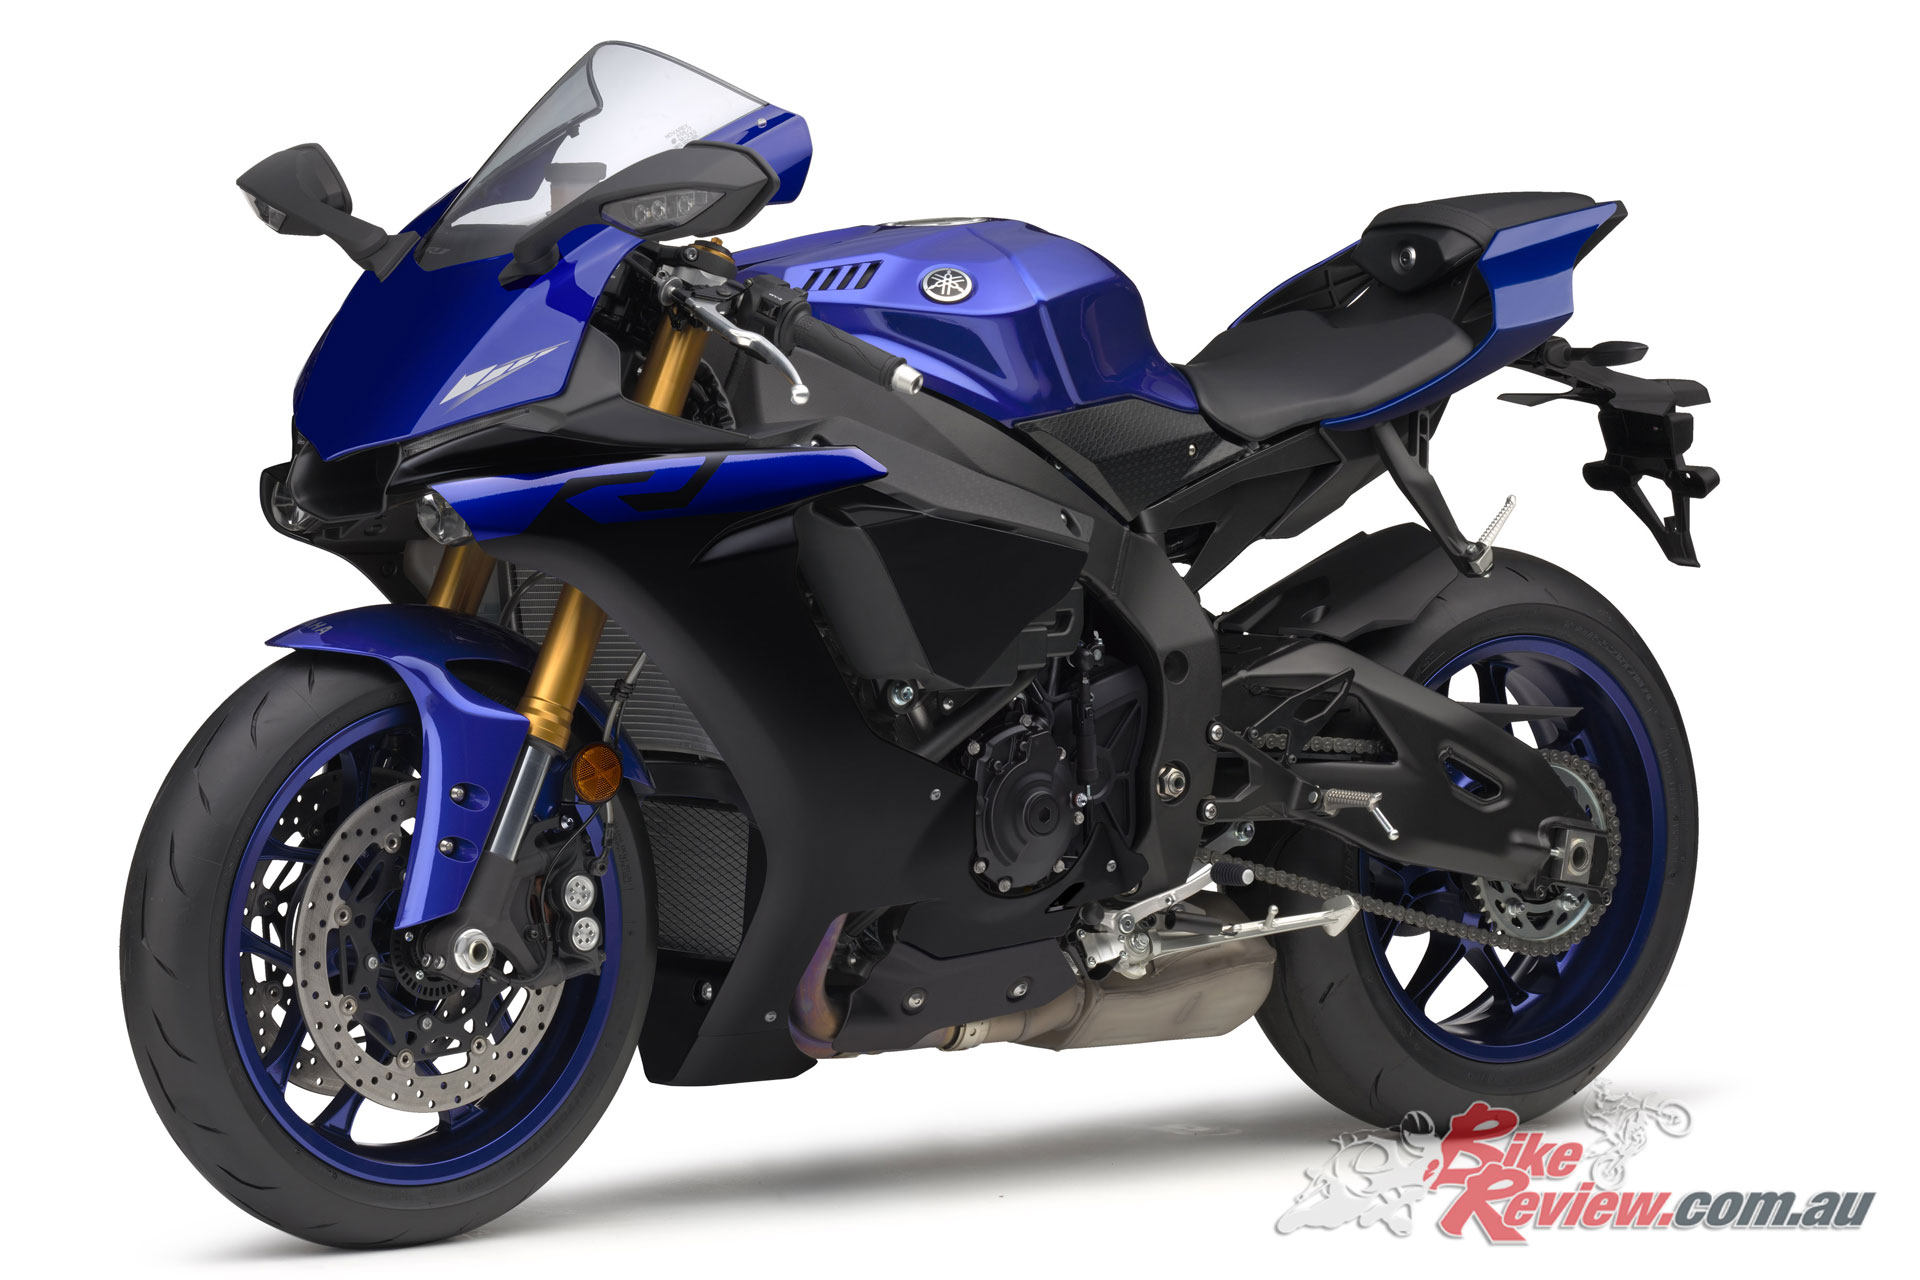 New Colours Arrive For 2019 Yamaha Yzf R1 Bike Review